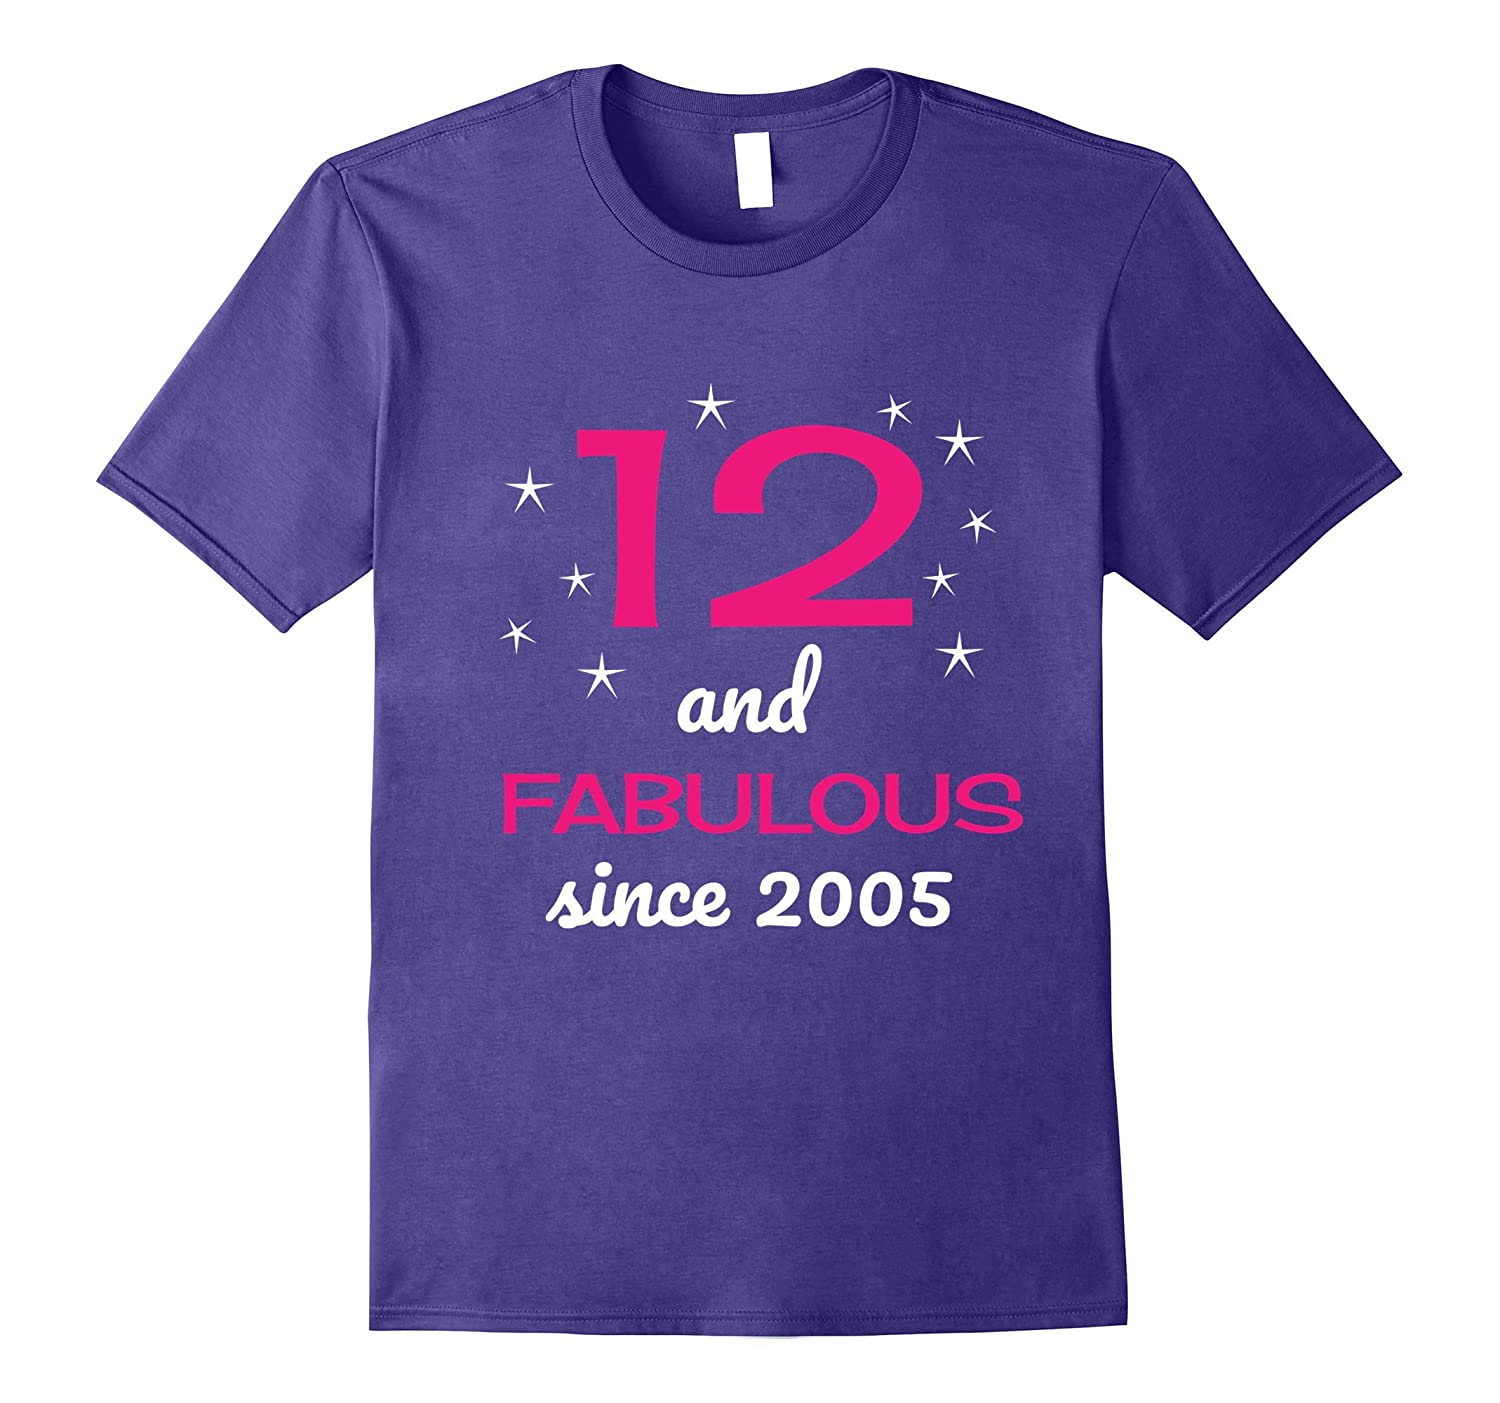 12 and Fabulous since 2005 t-shirt for 12 year old girls-T-Shirt